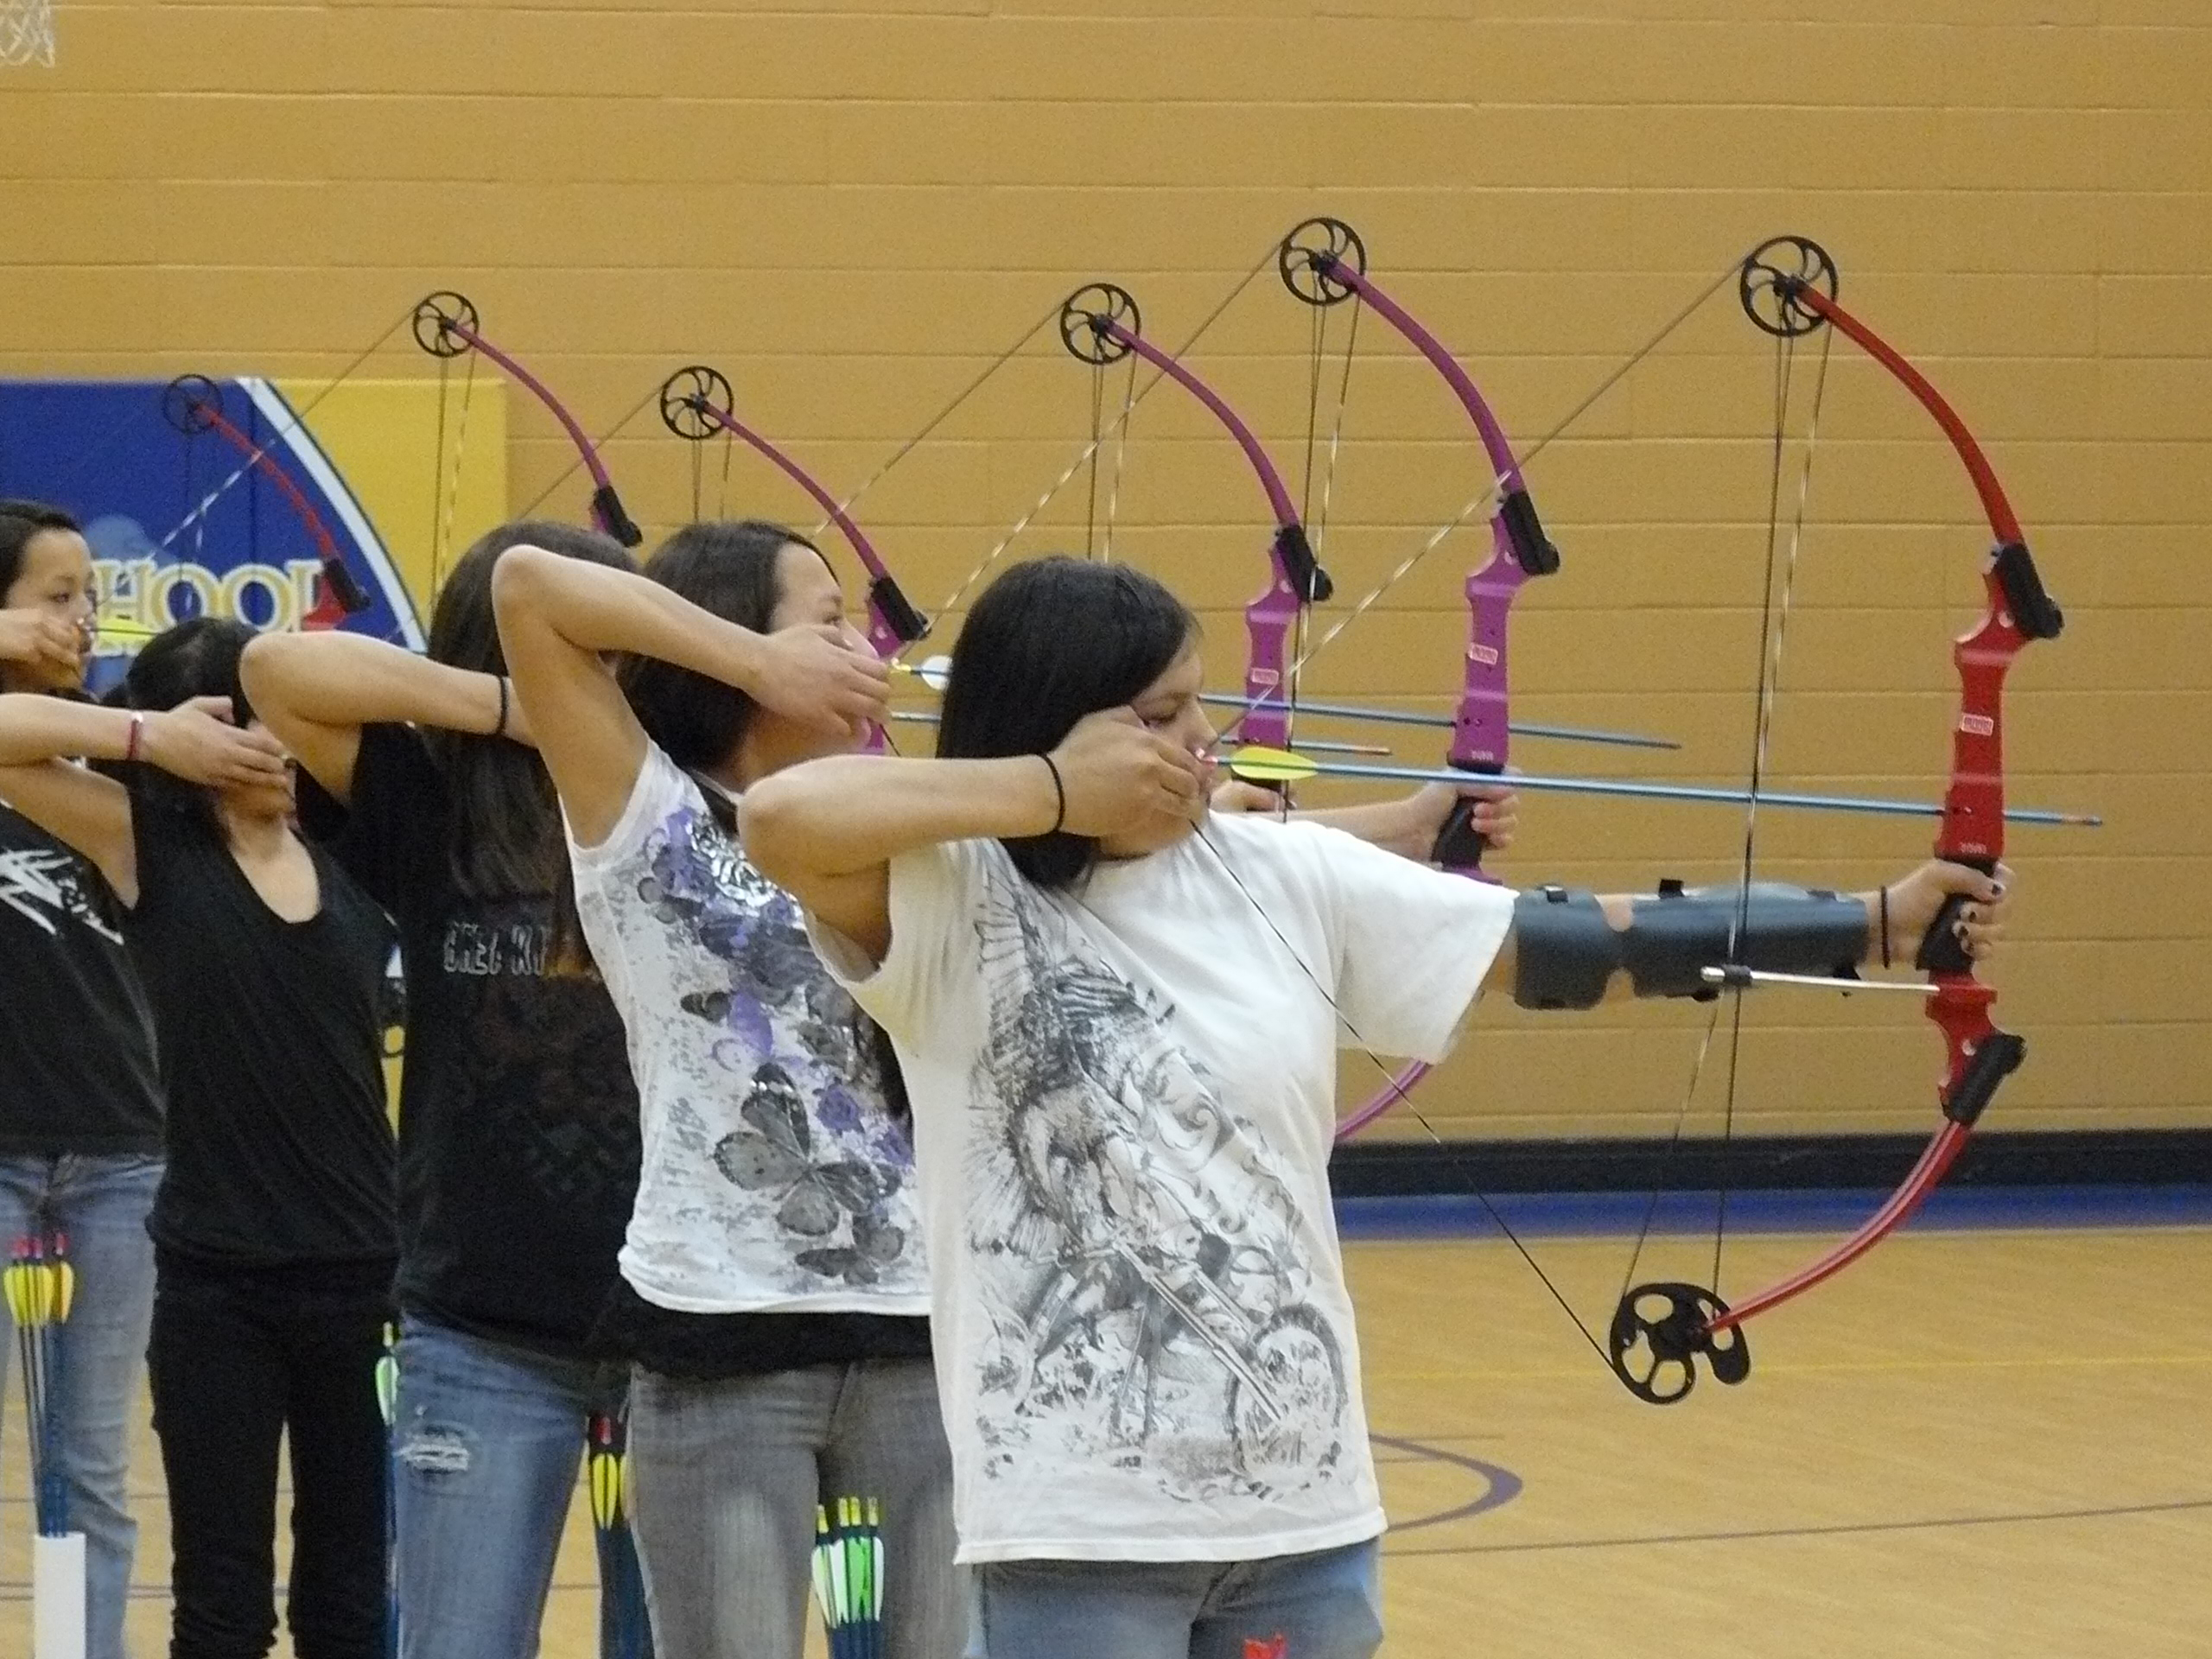 These American Indian girls have great archery skills!